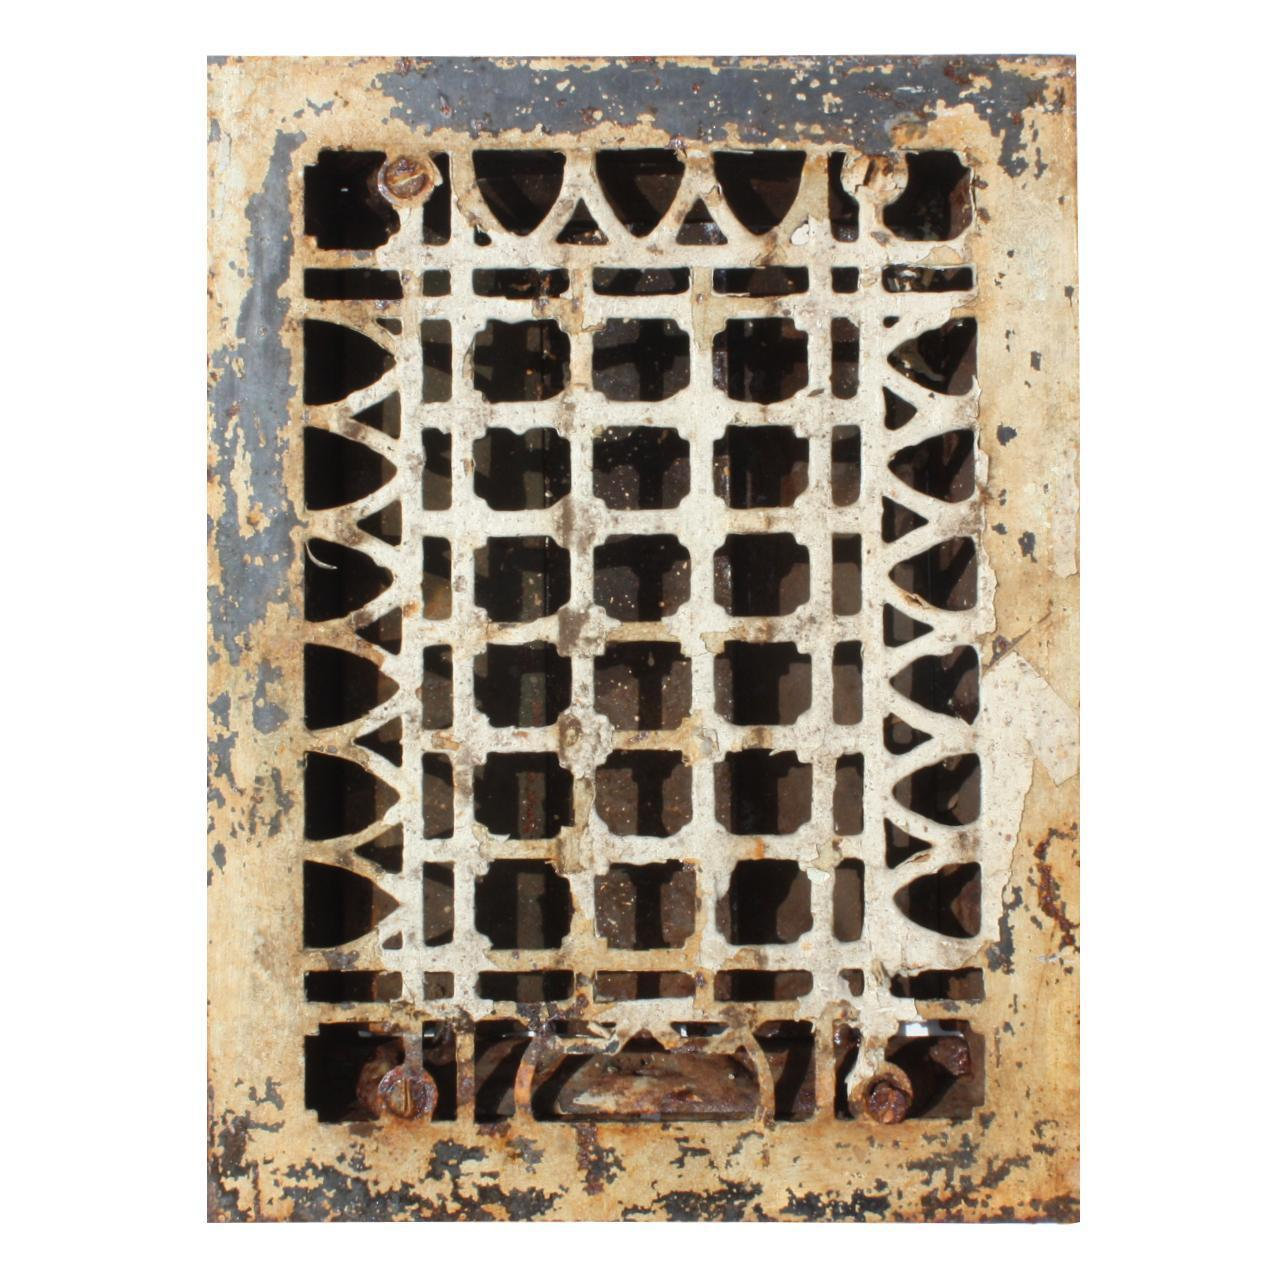 Geometric Antique Cast Iron Heat Register, Early 1900s